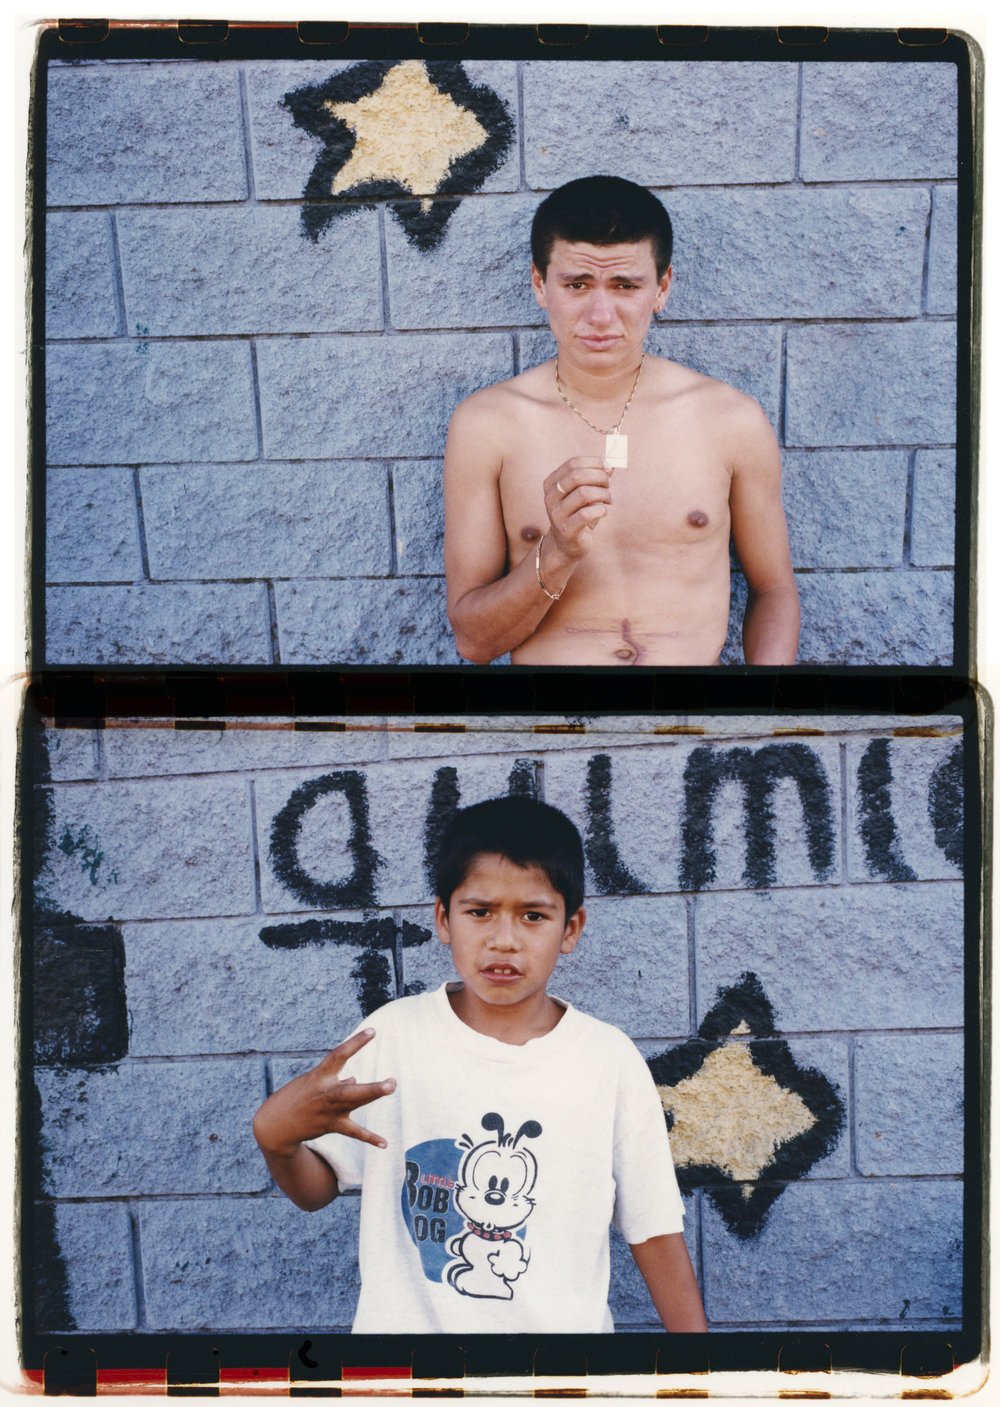 Chico Brenes, Los Angeles, 1998